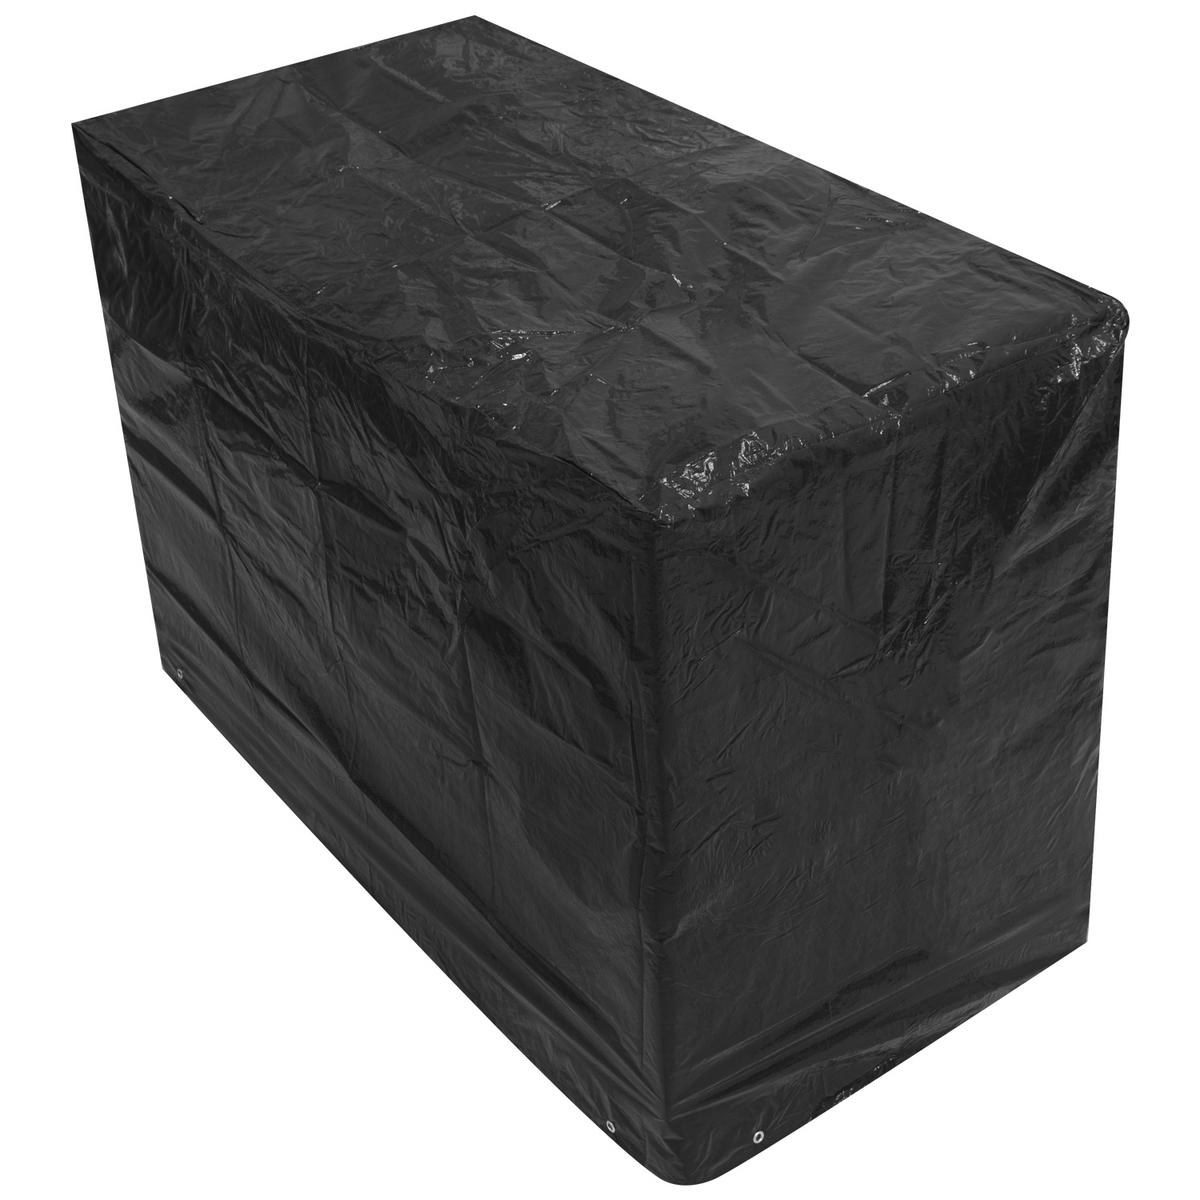 Woodside 2 Seater 1.2M Bench Cover BLACK